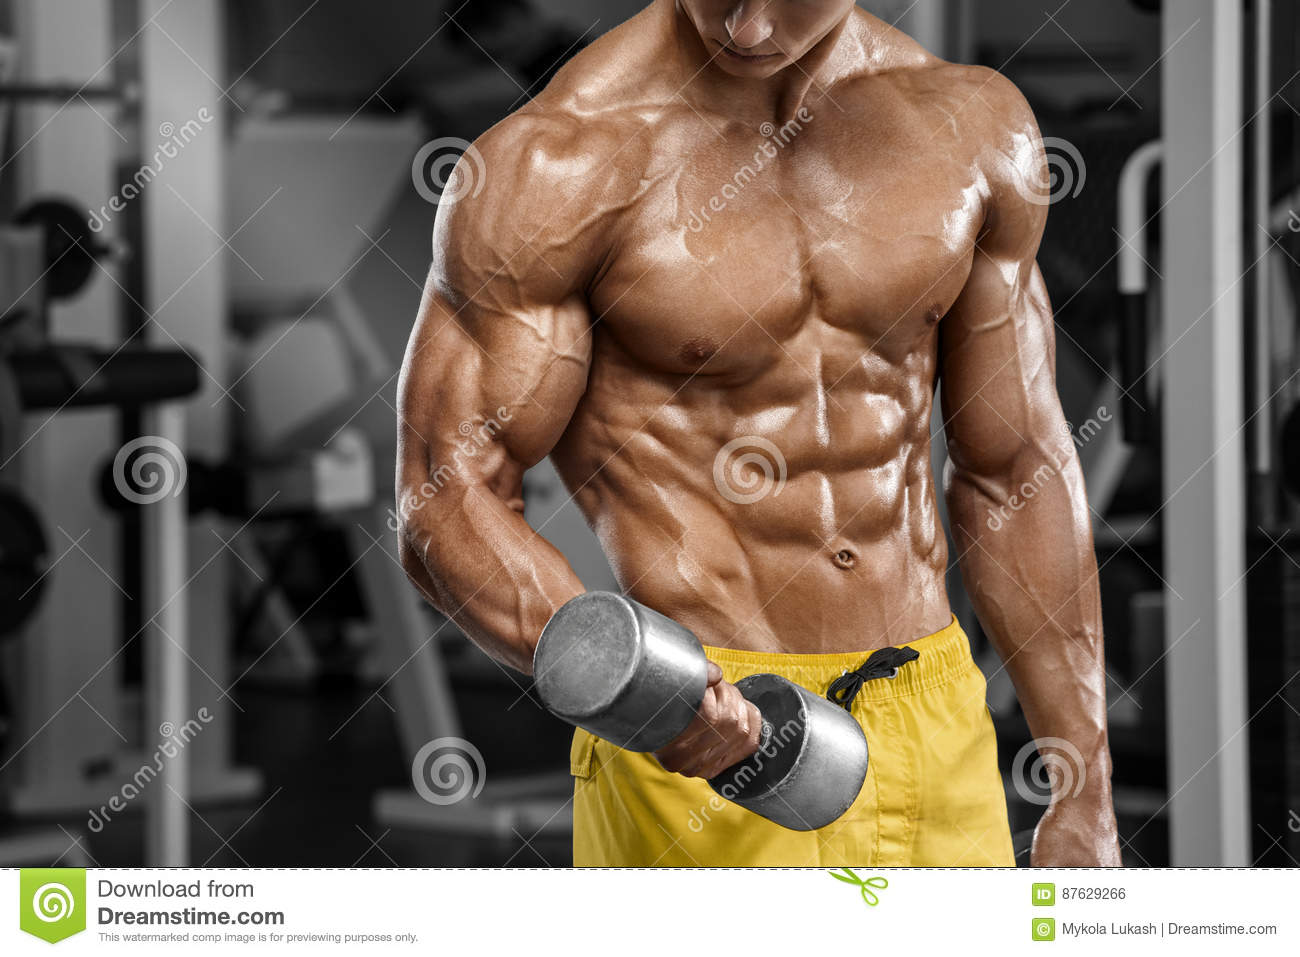 Muscular Man Working Out In Gym, Strong Arab Male, Naked